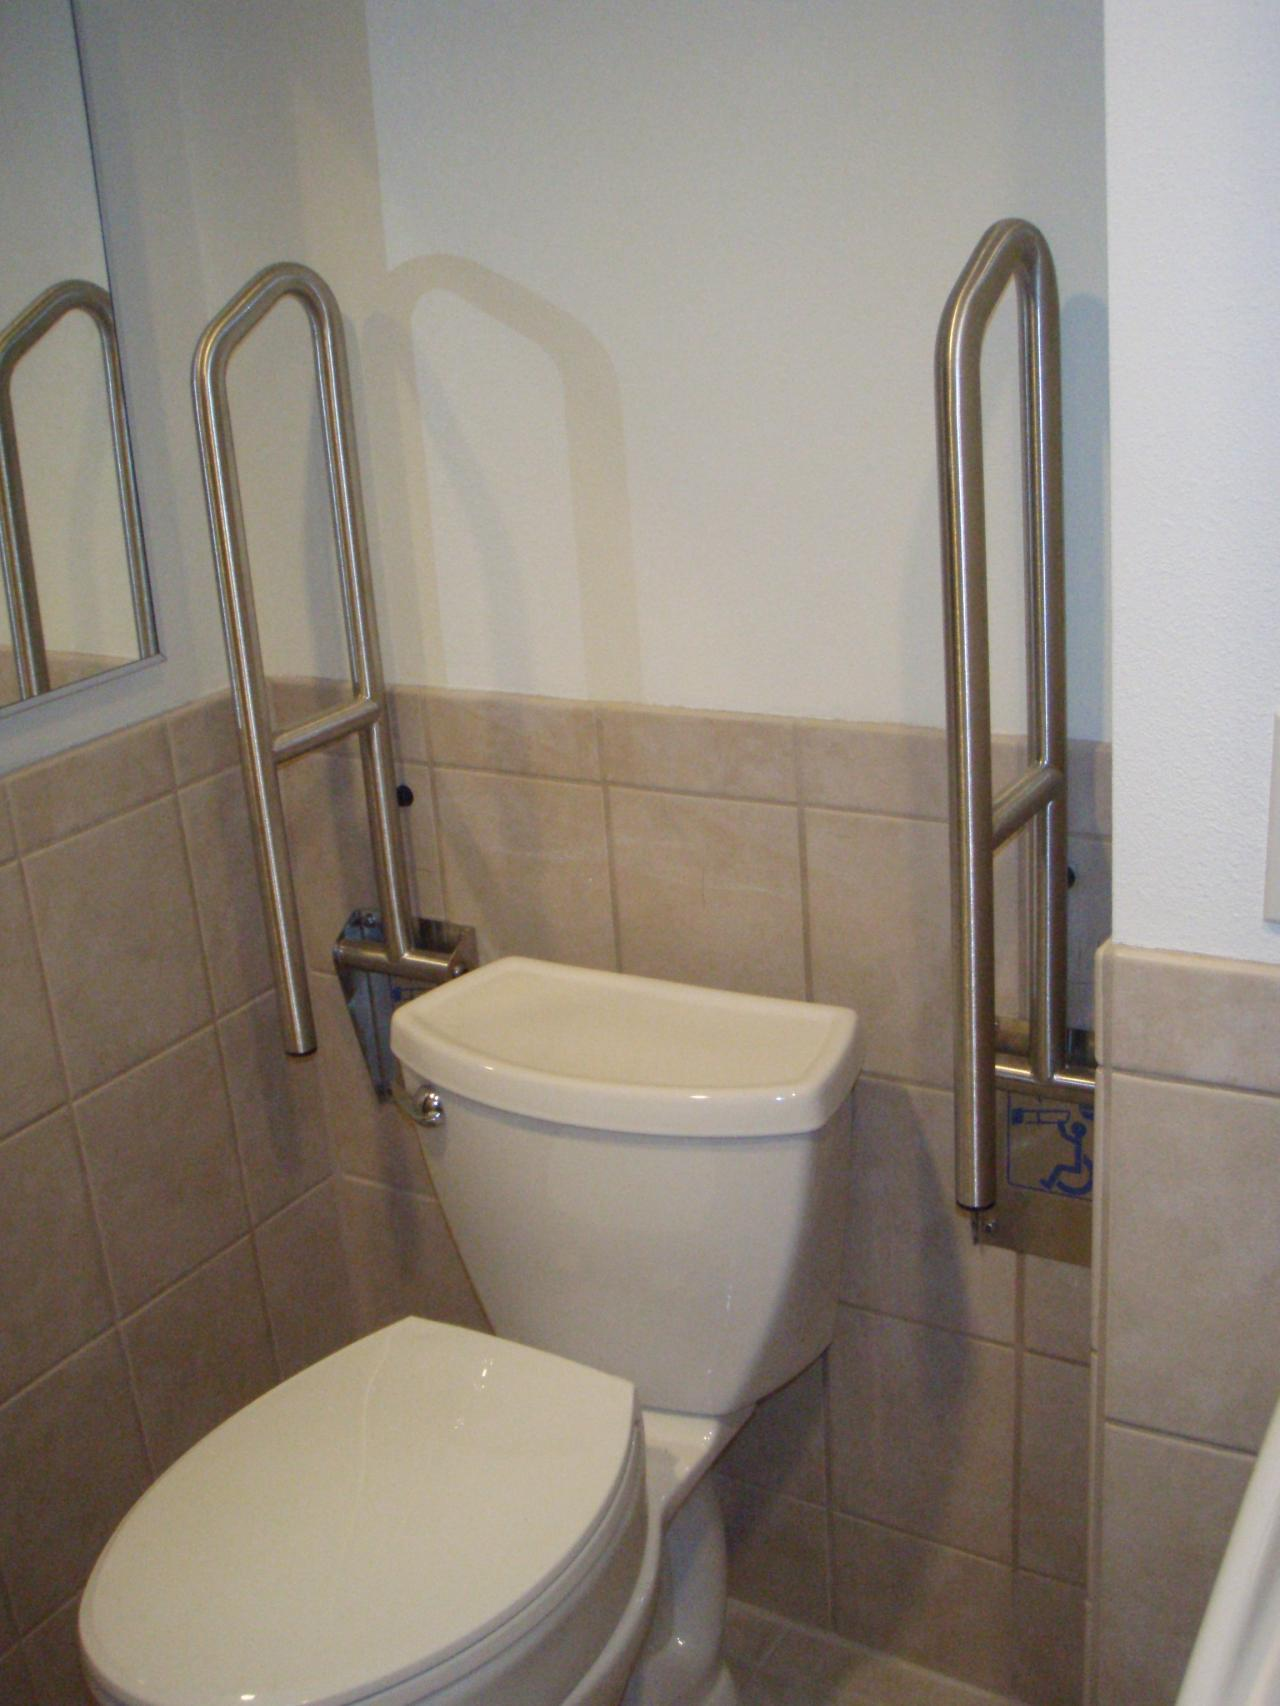 Prodan construction handicapped bathroom ms hayashi - Handicap bars for bathroom toilet ...